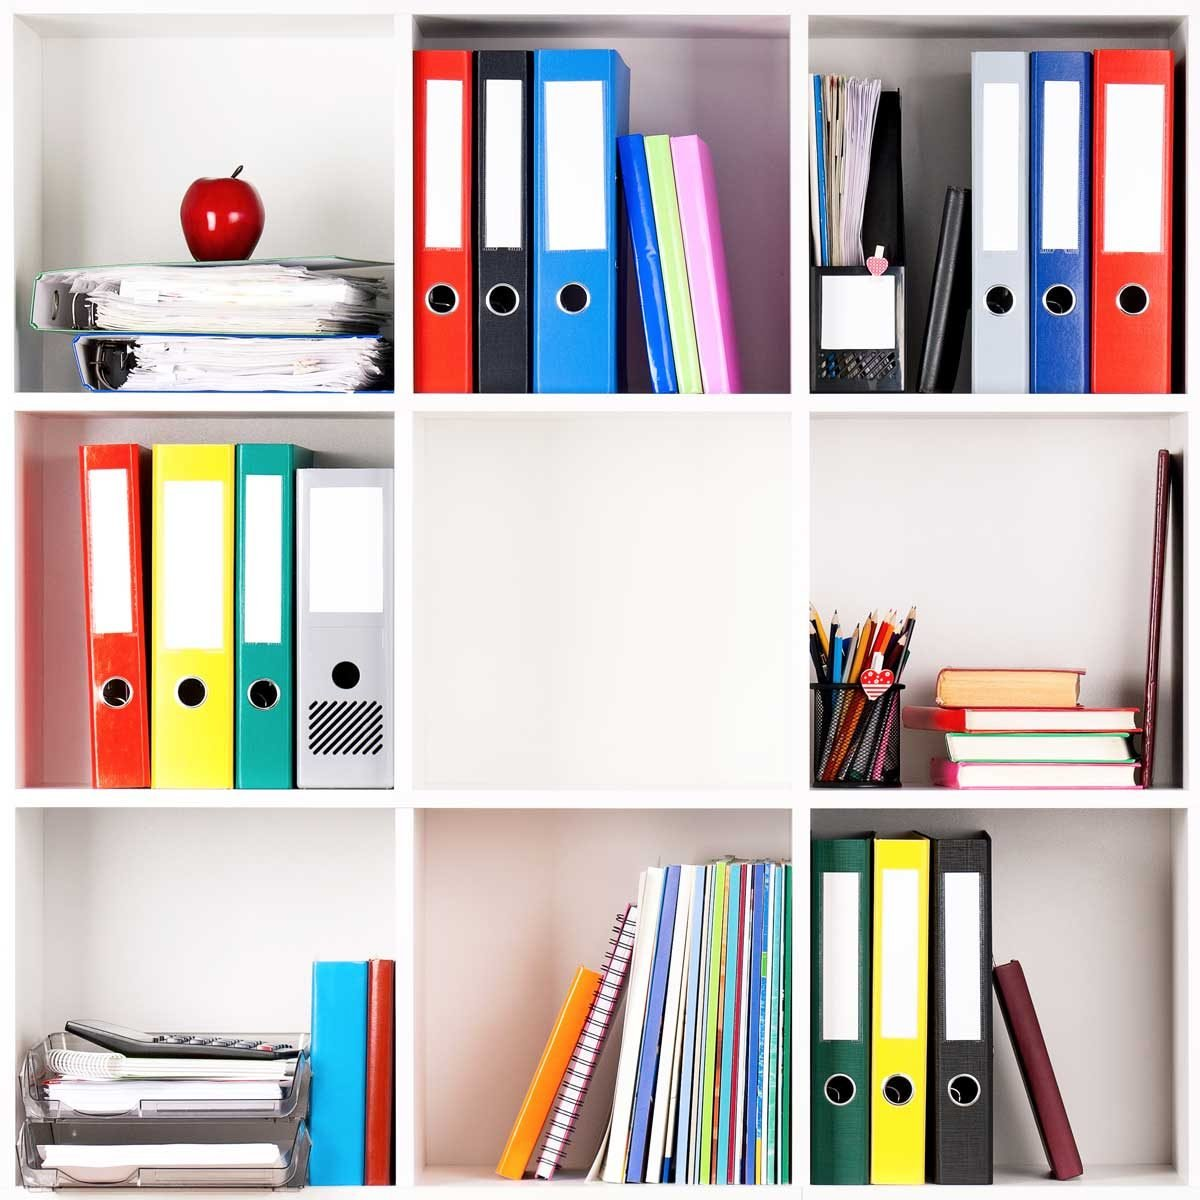 Office supplies on shelves